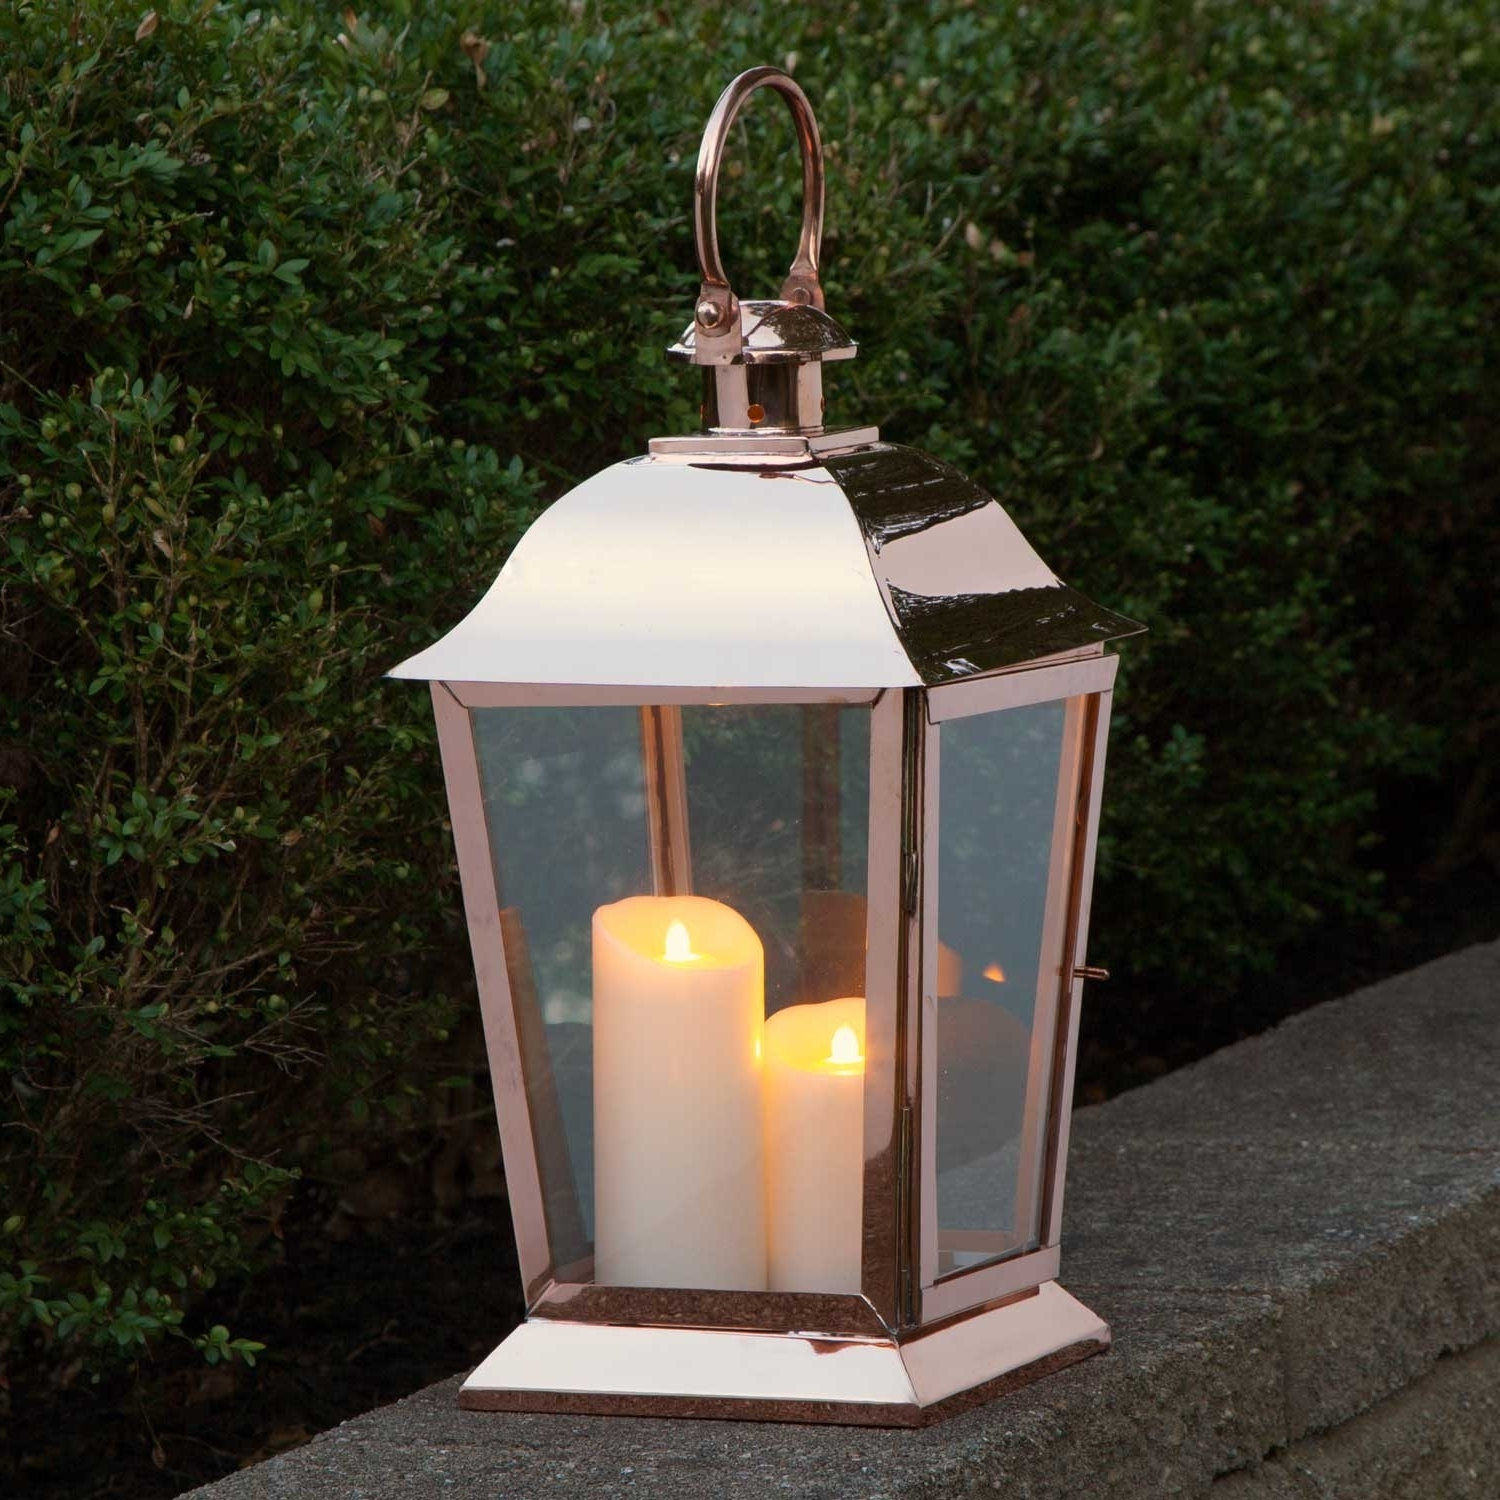 Preferred List Of Synonyms And Antonyms The Word Outdoor Candle Lanterns Grade With Outdoor Lanterns With Candles (View 18 of 20)